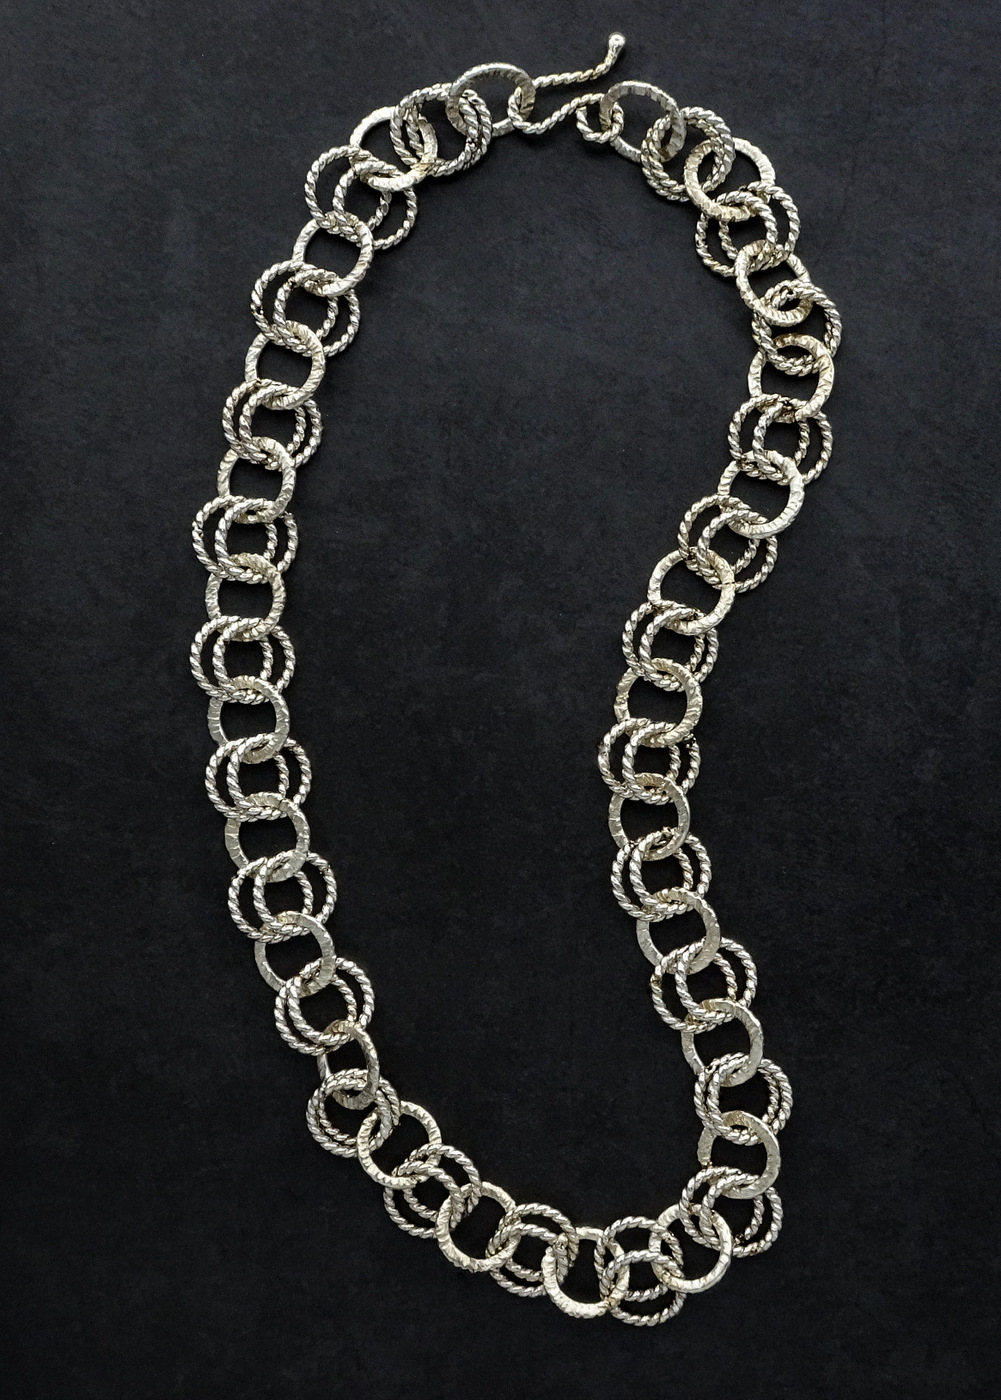 DOUBLE LINKS SILVER CHAIN,  .5 inch links,  20 inch length